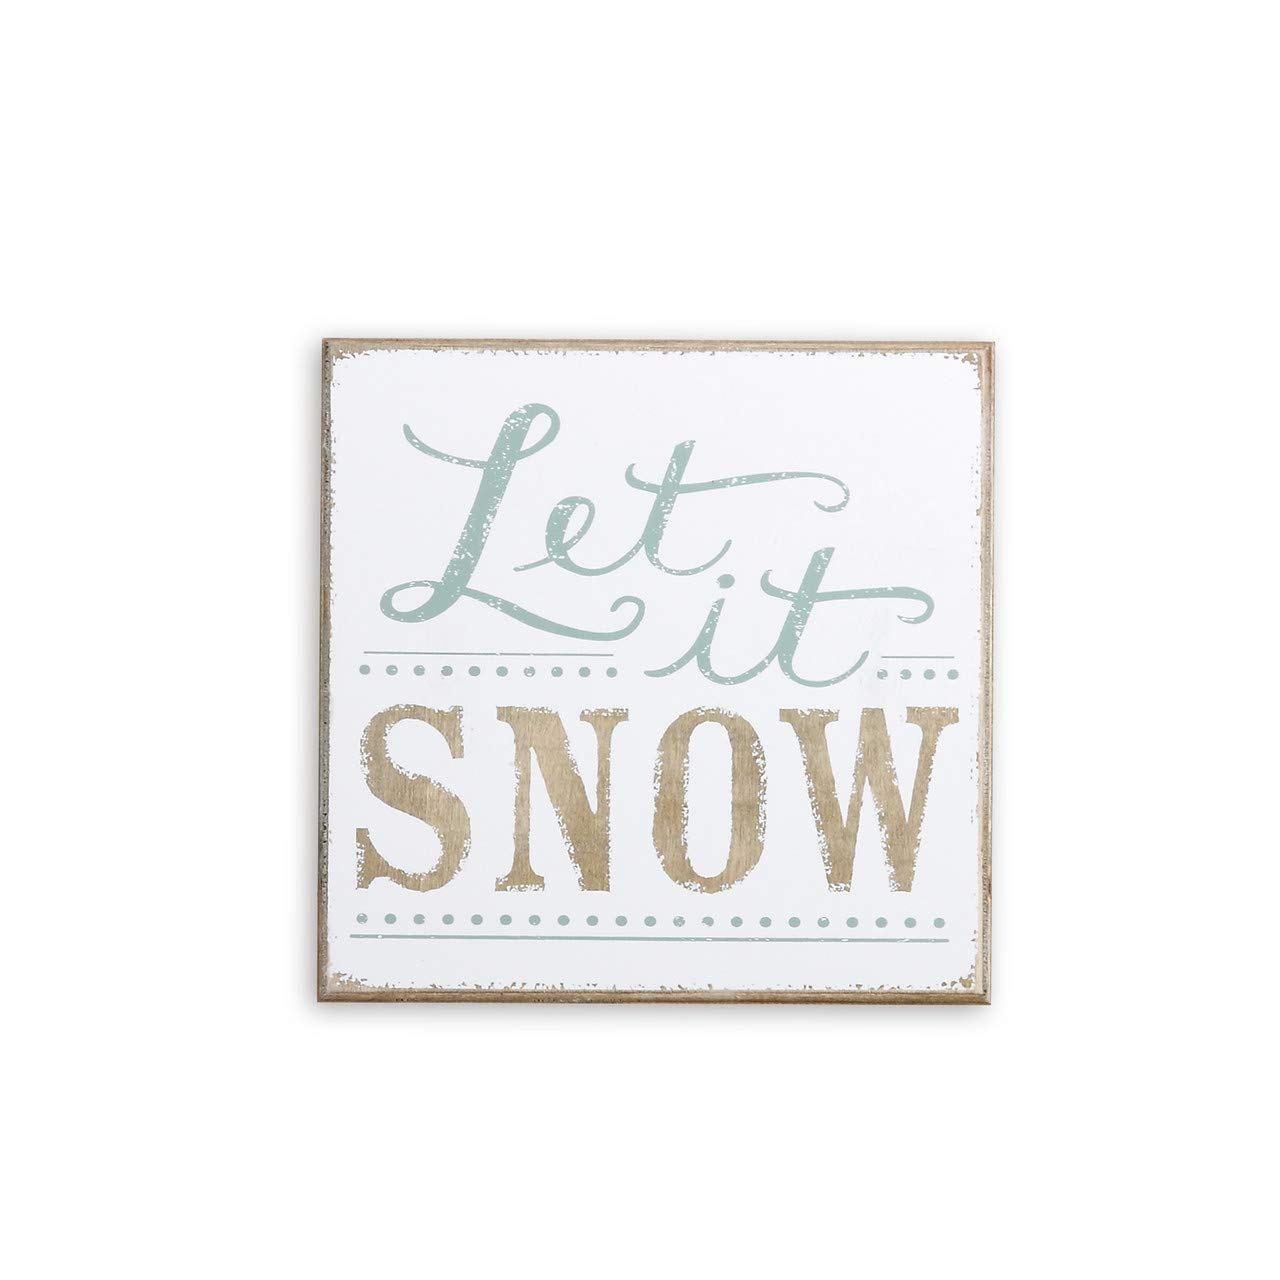 DEMDACO Let It Snow Natural Brown 9 x 9 Wood Composite Christmas Wall Art Plaque